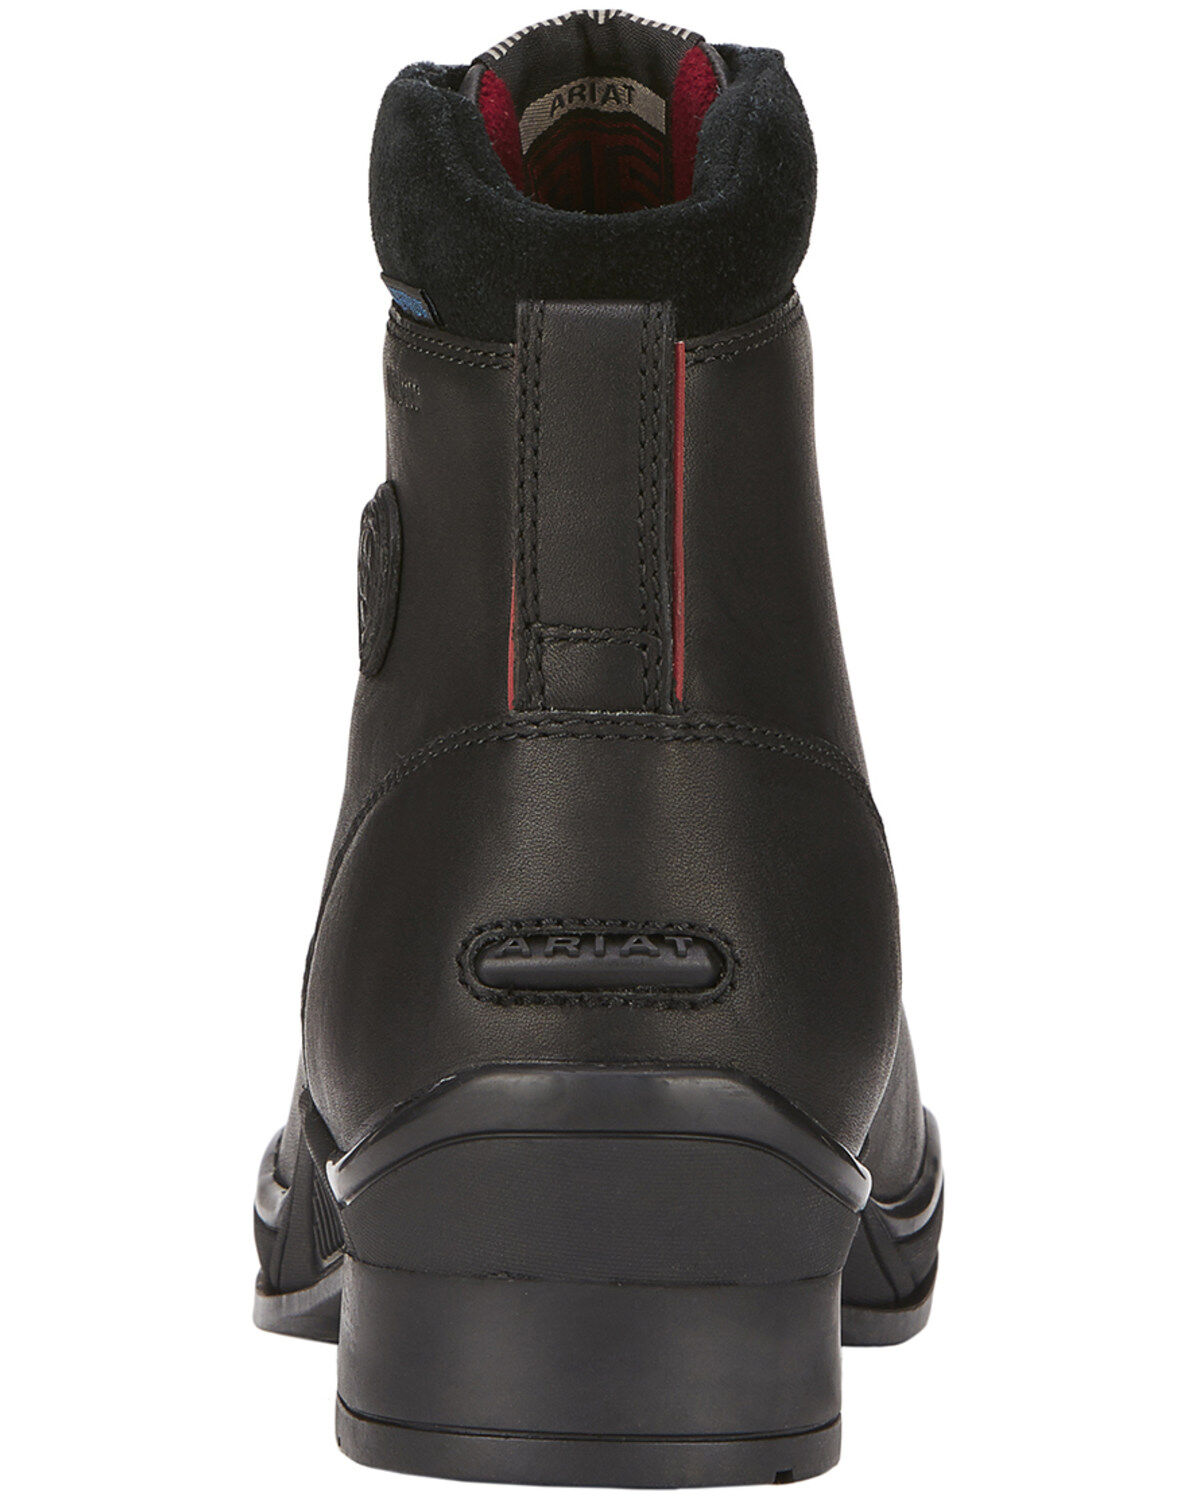 Ariat Womens Extreme Paddock H20 Insulated Boots